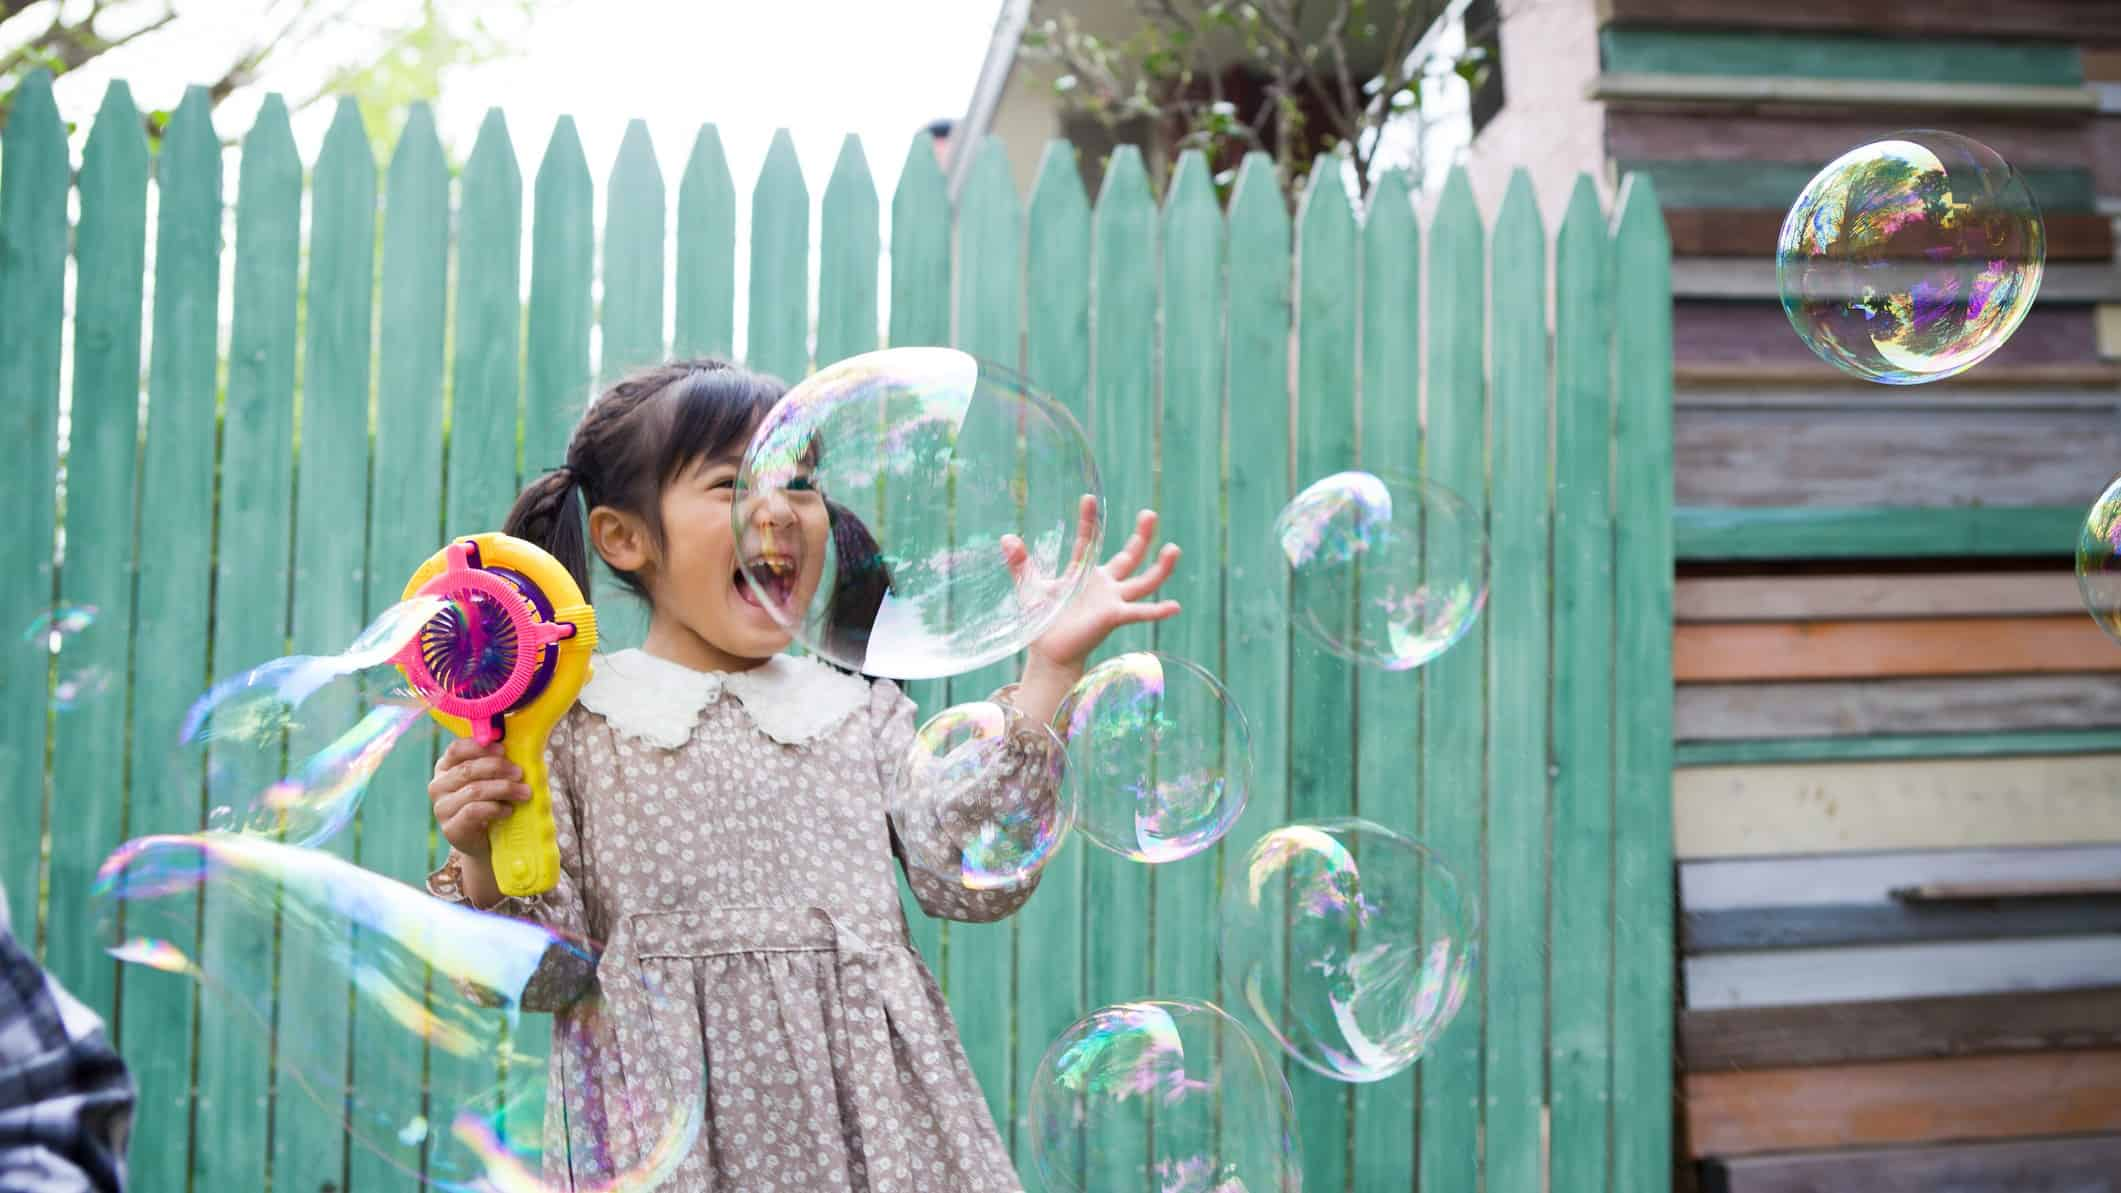 A little Asian girl is so excited by the bubbles coming out of her bubble machine.